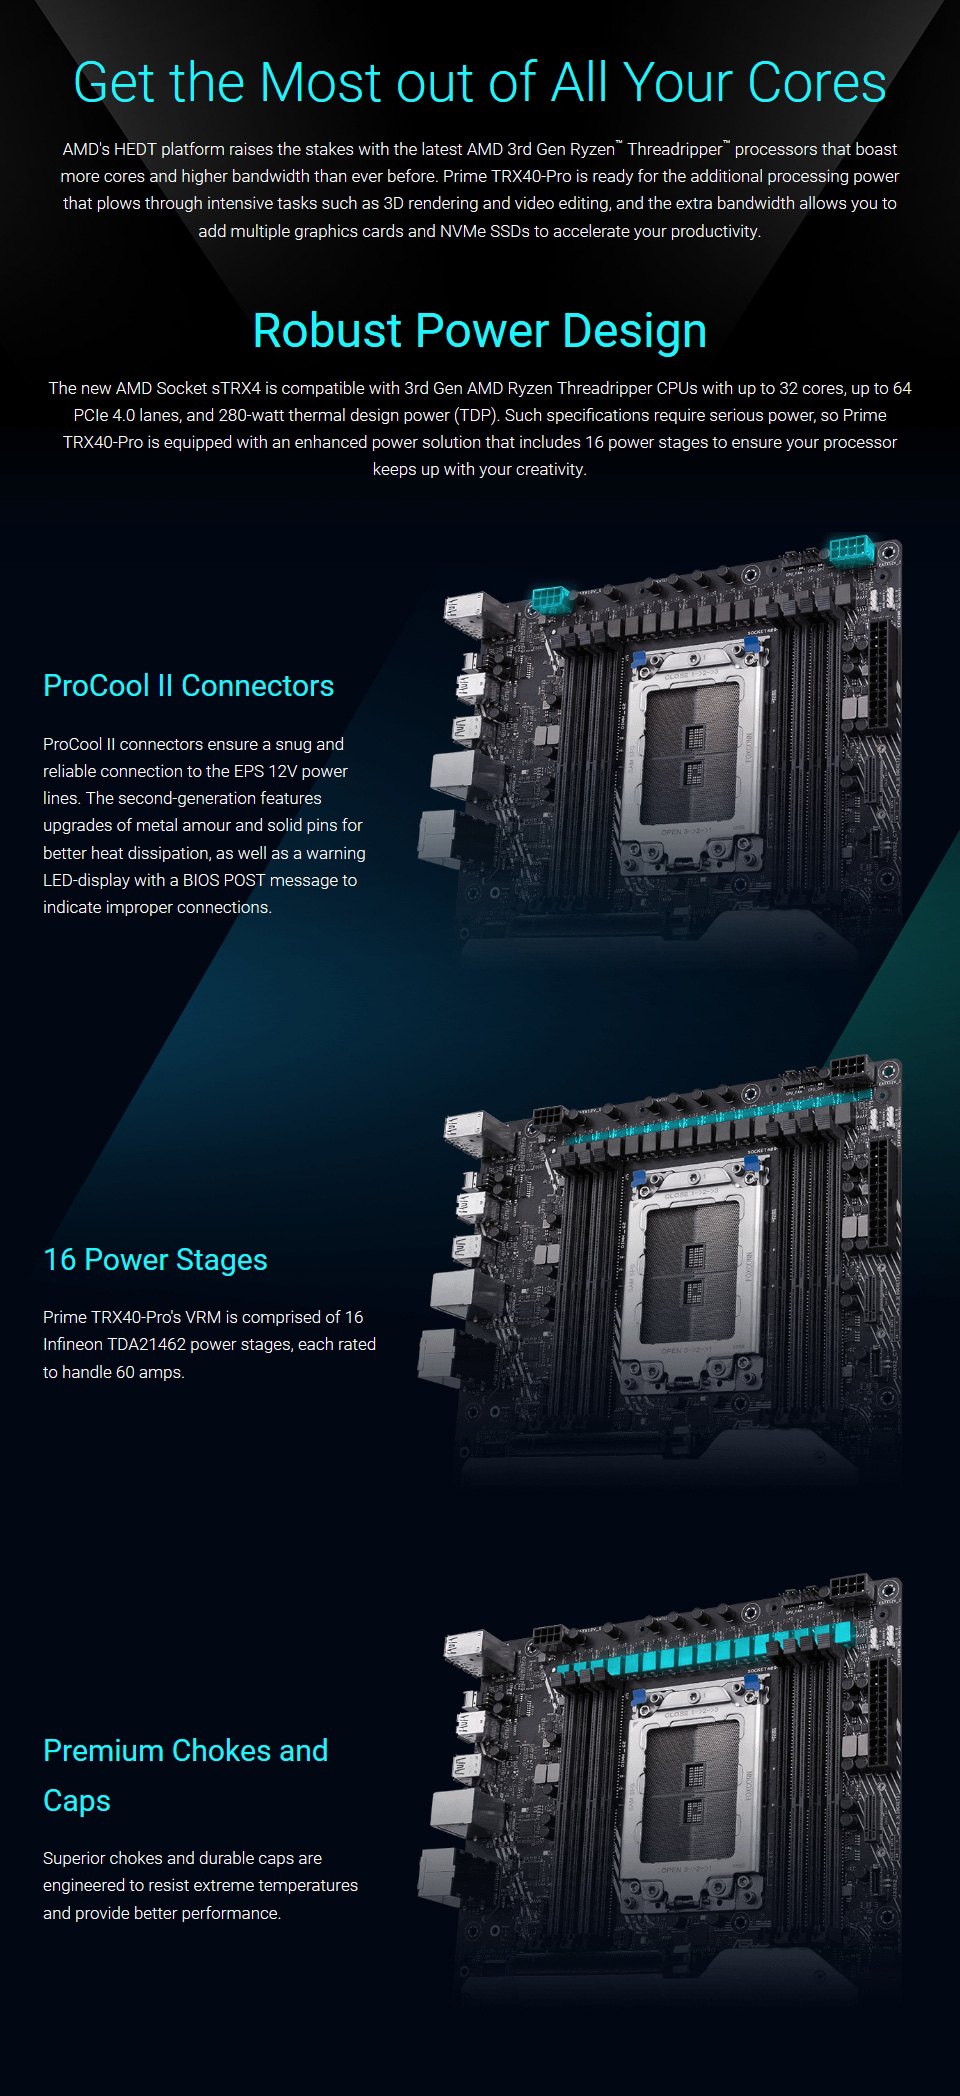 ASUS Prime TRX40 Pro Motherboard features 2